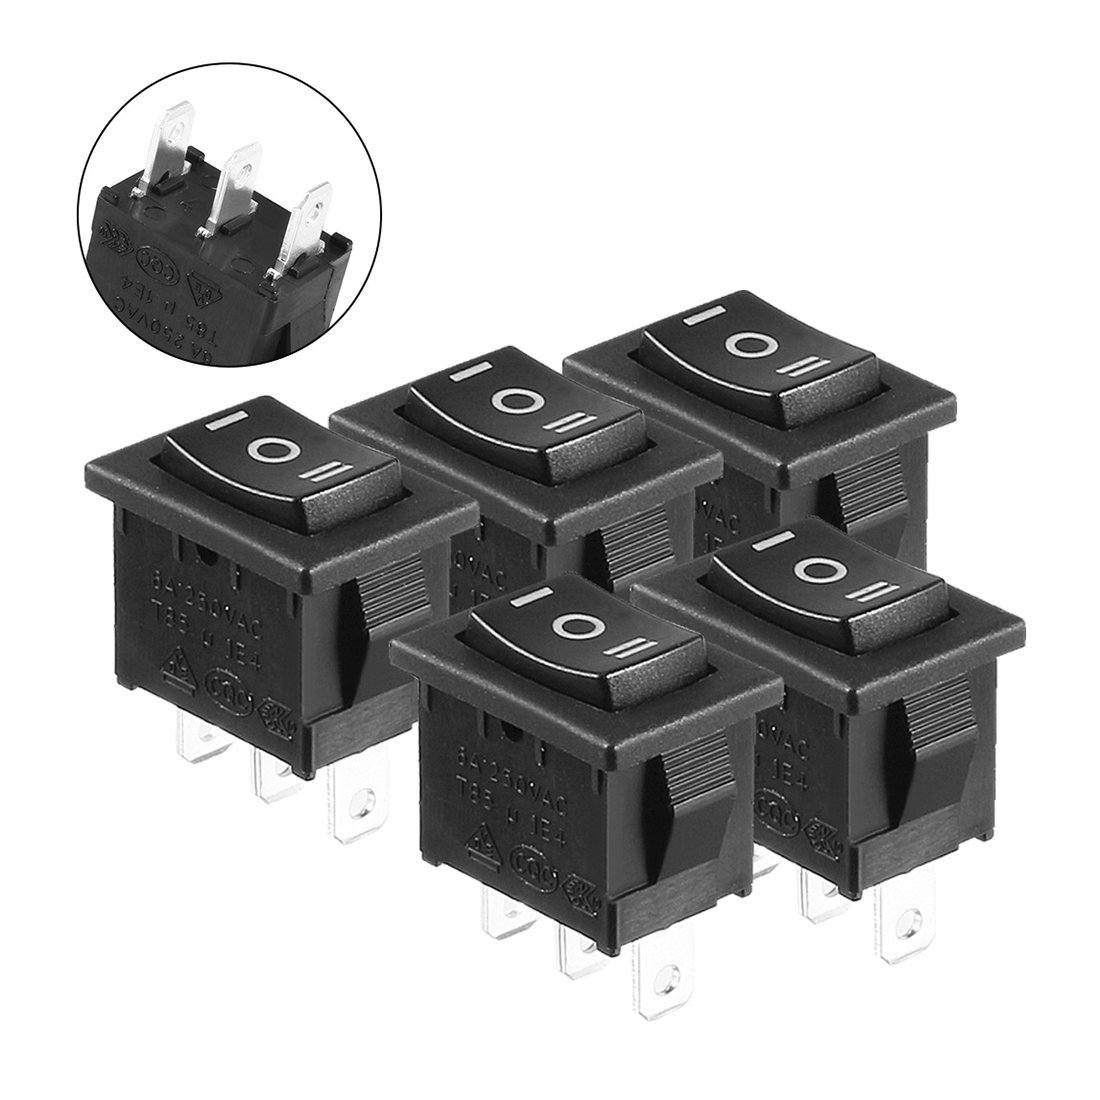 uxcell 5pcs AC 6A/250V 10A/125V On/Off/On SPDT Rocker Switch Latching